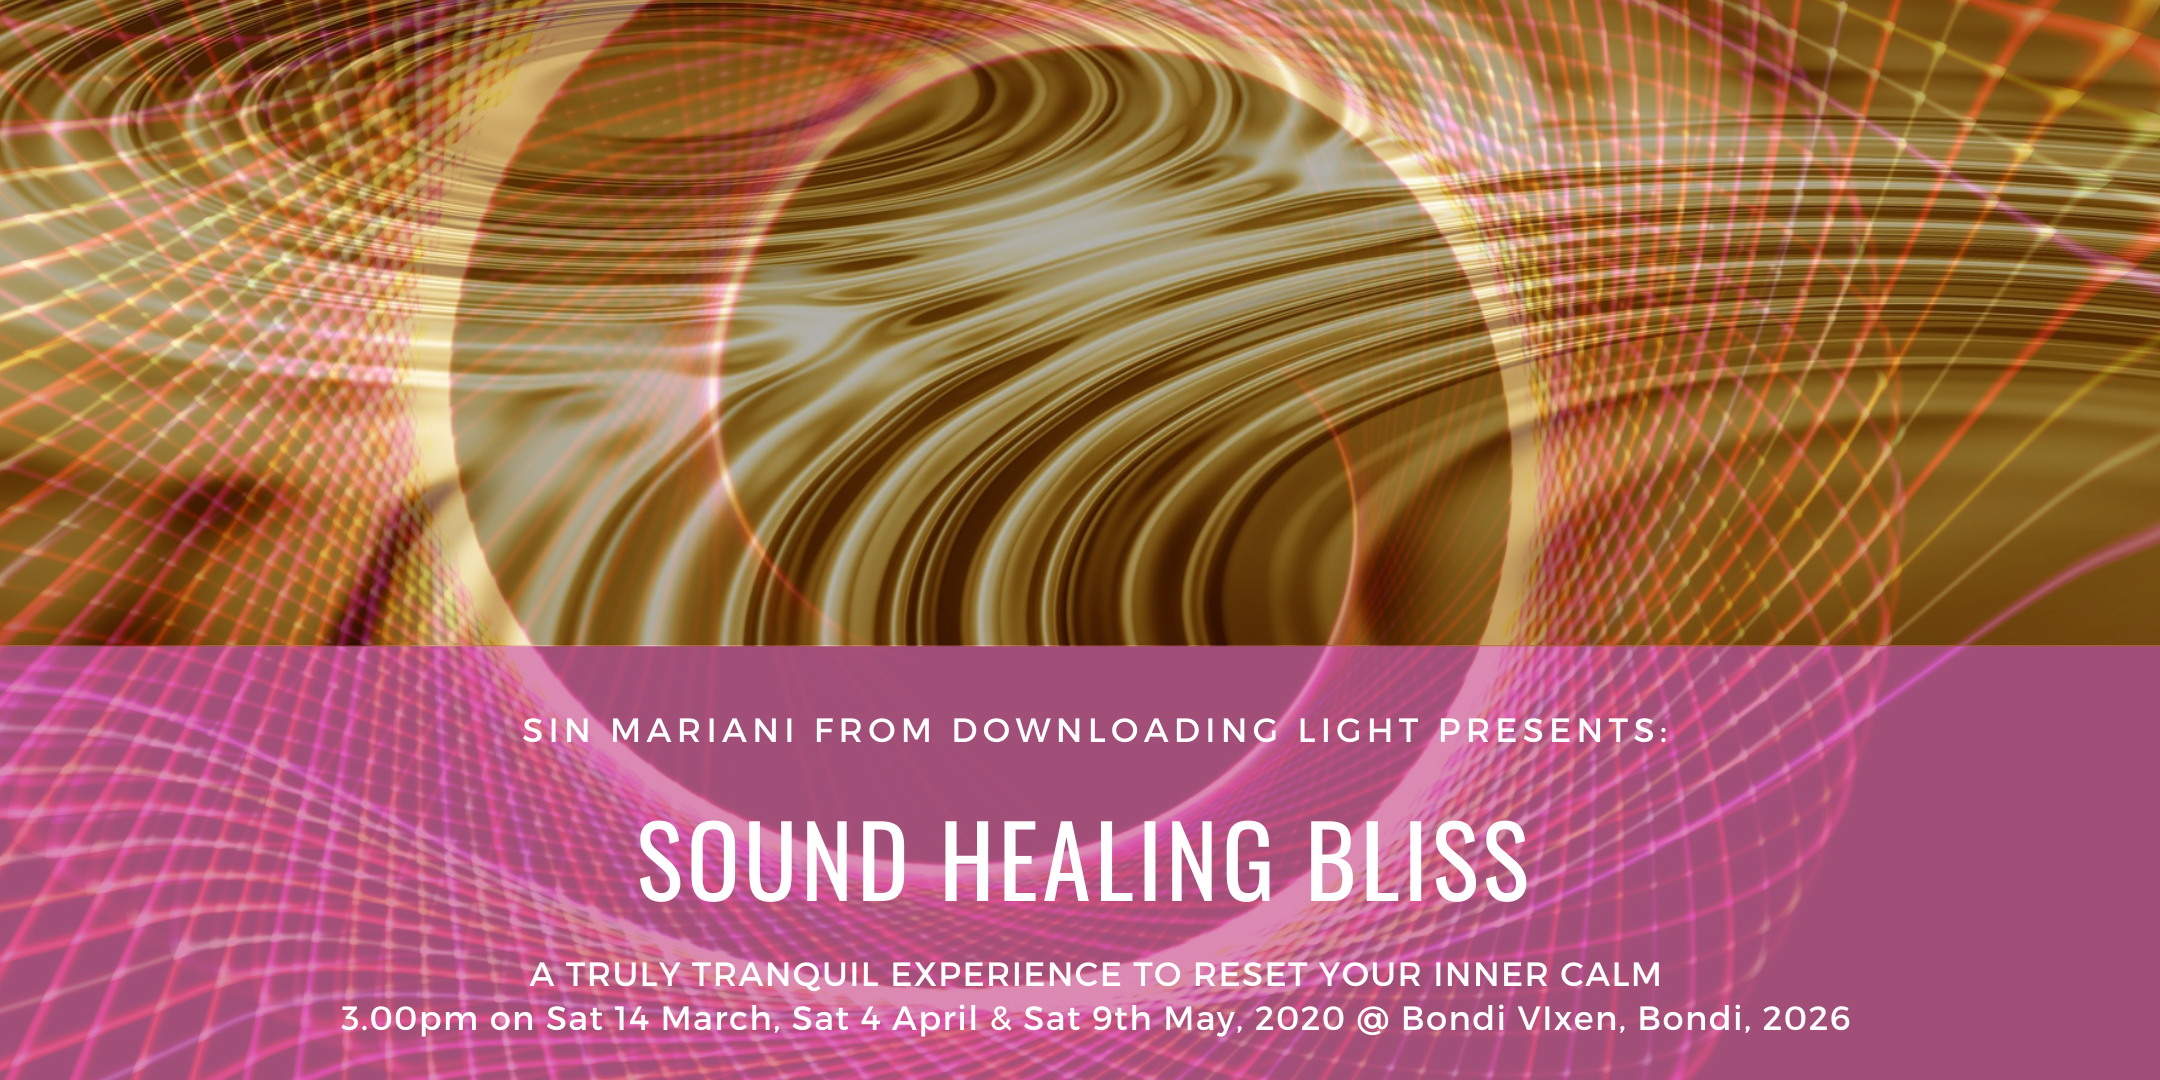 Sound Healing Bliss poster by Sin Mariani from Downloading Light.